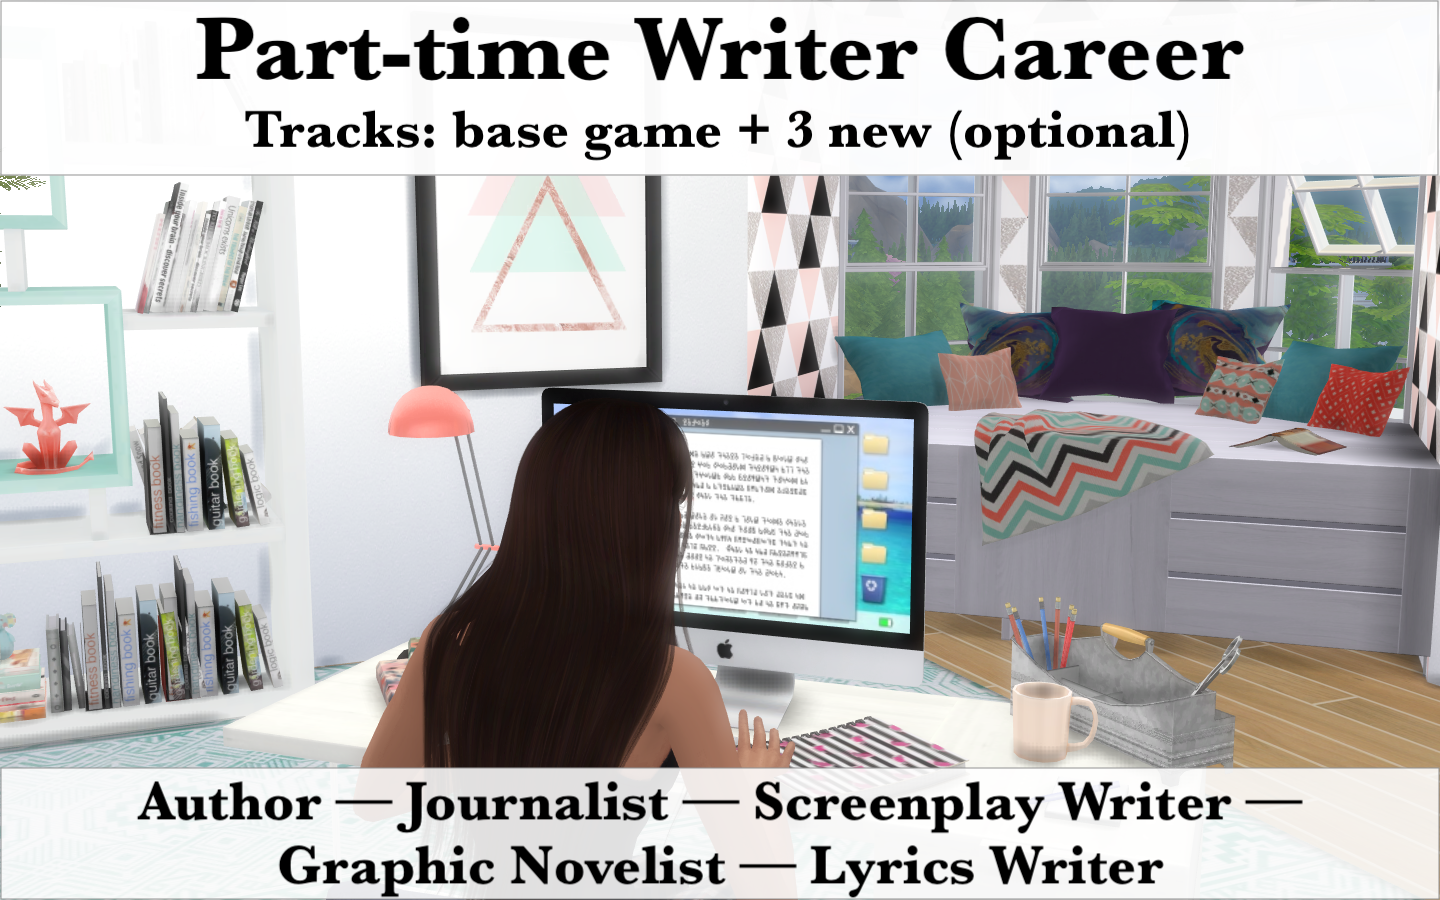 Career-Part Time